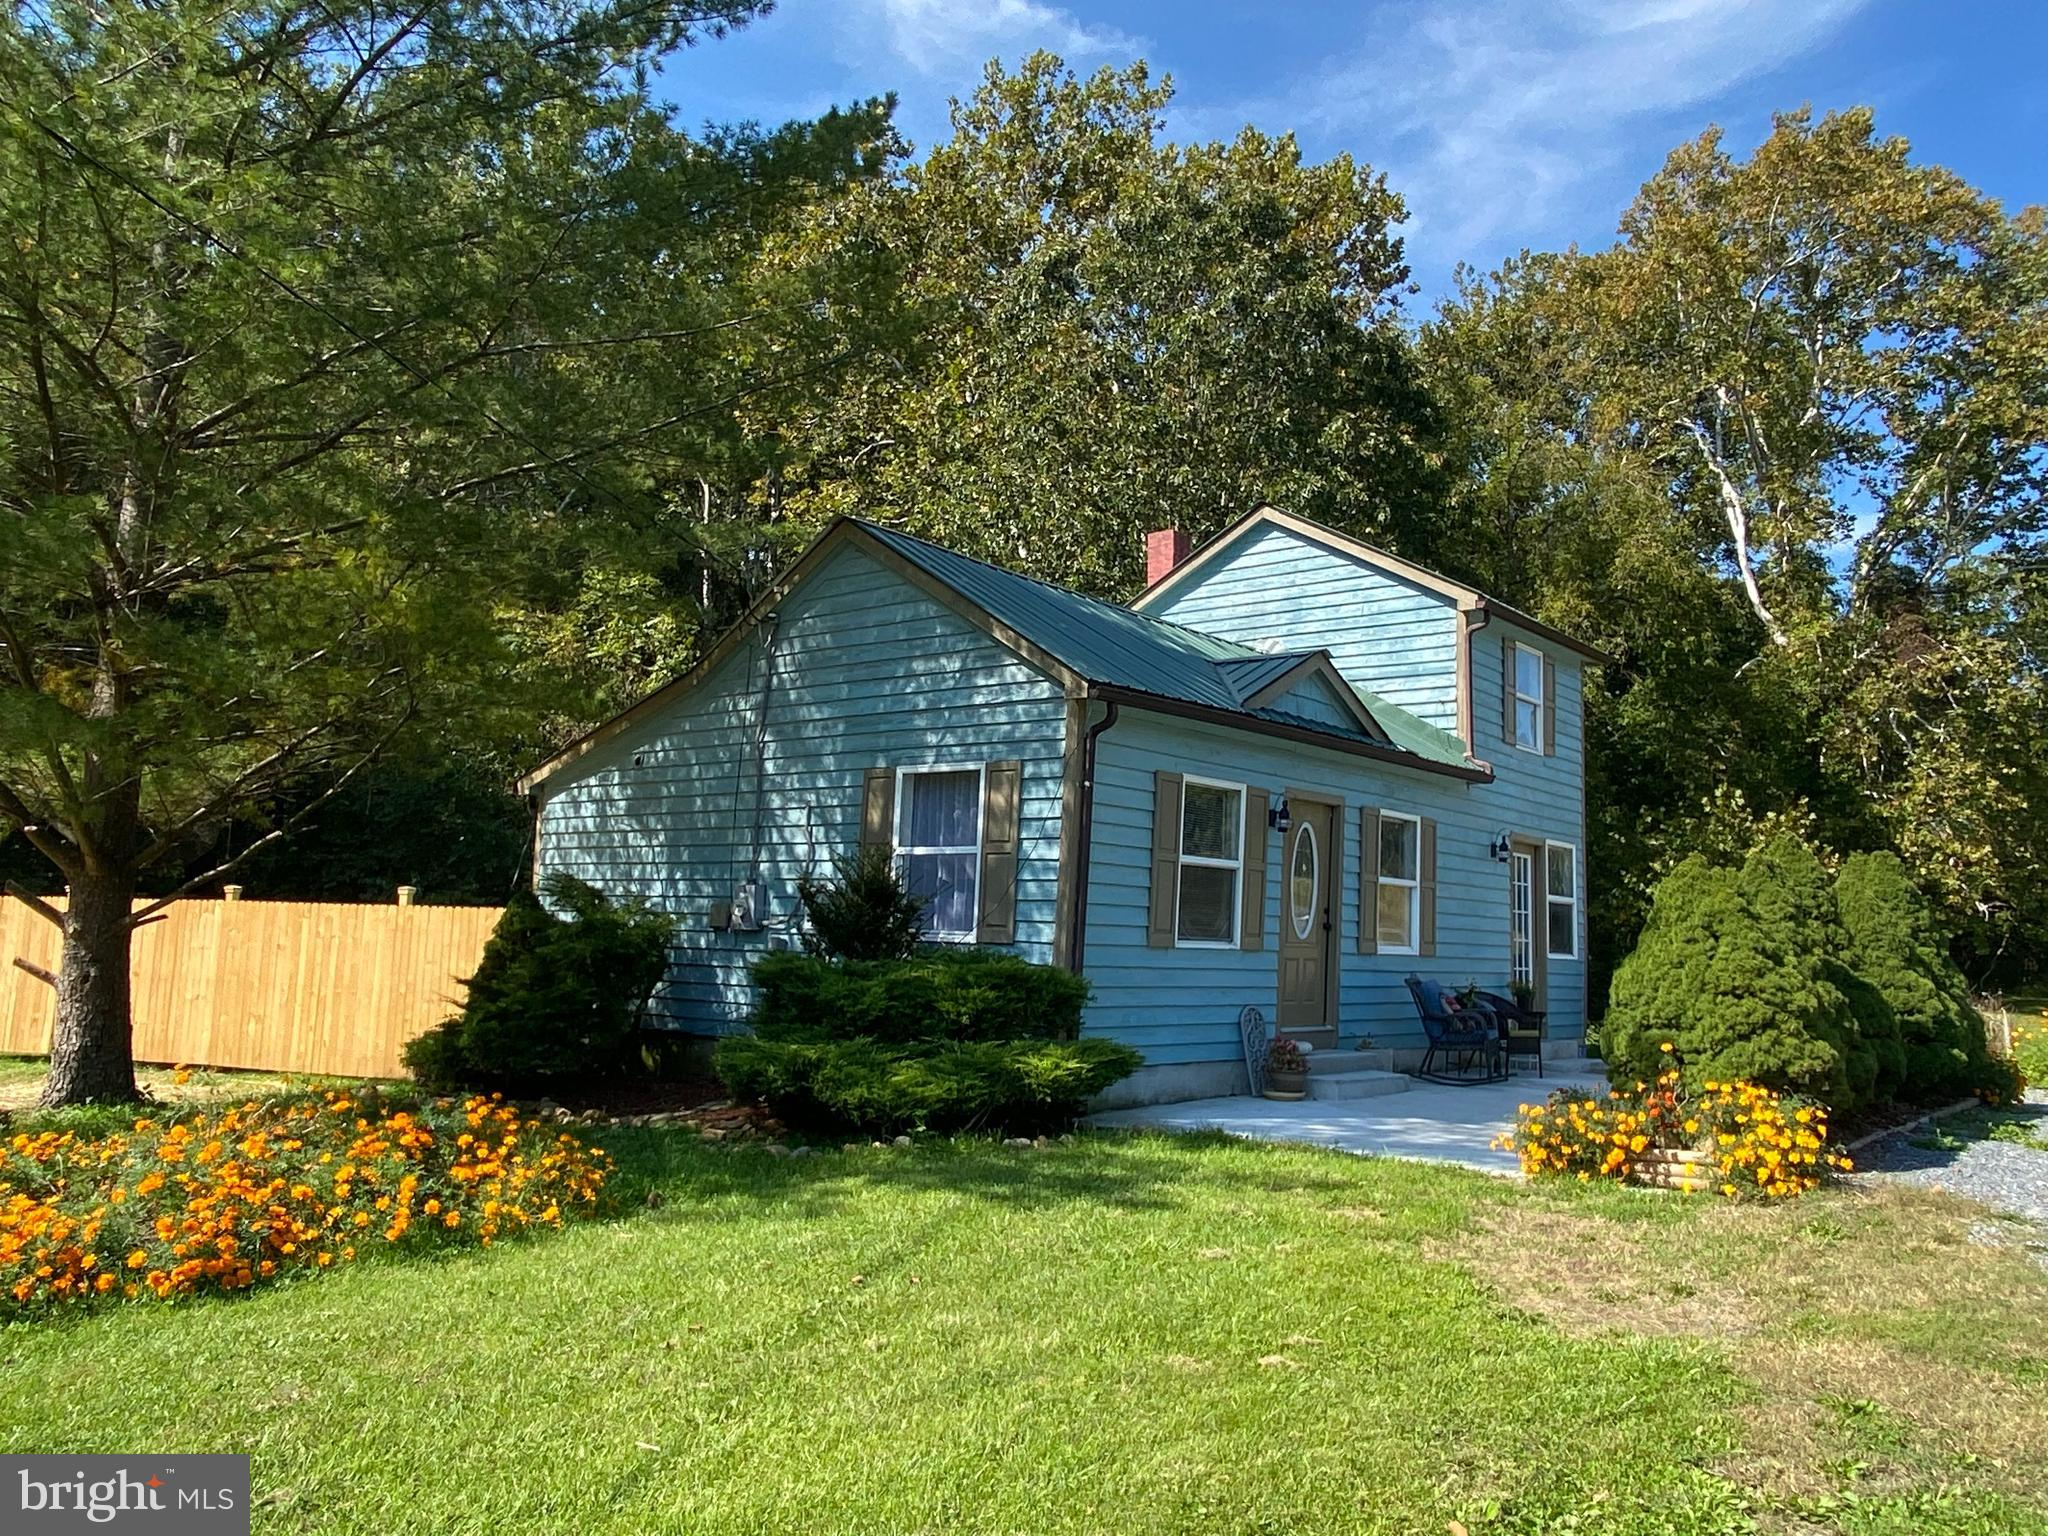 THERE ARE NUMEROUS POSSIBILITIES WITH THIS ADORABLE HOME WHICH IS LOCATED RIGHT ACROSS THE STREET FR